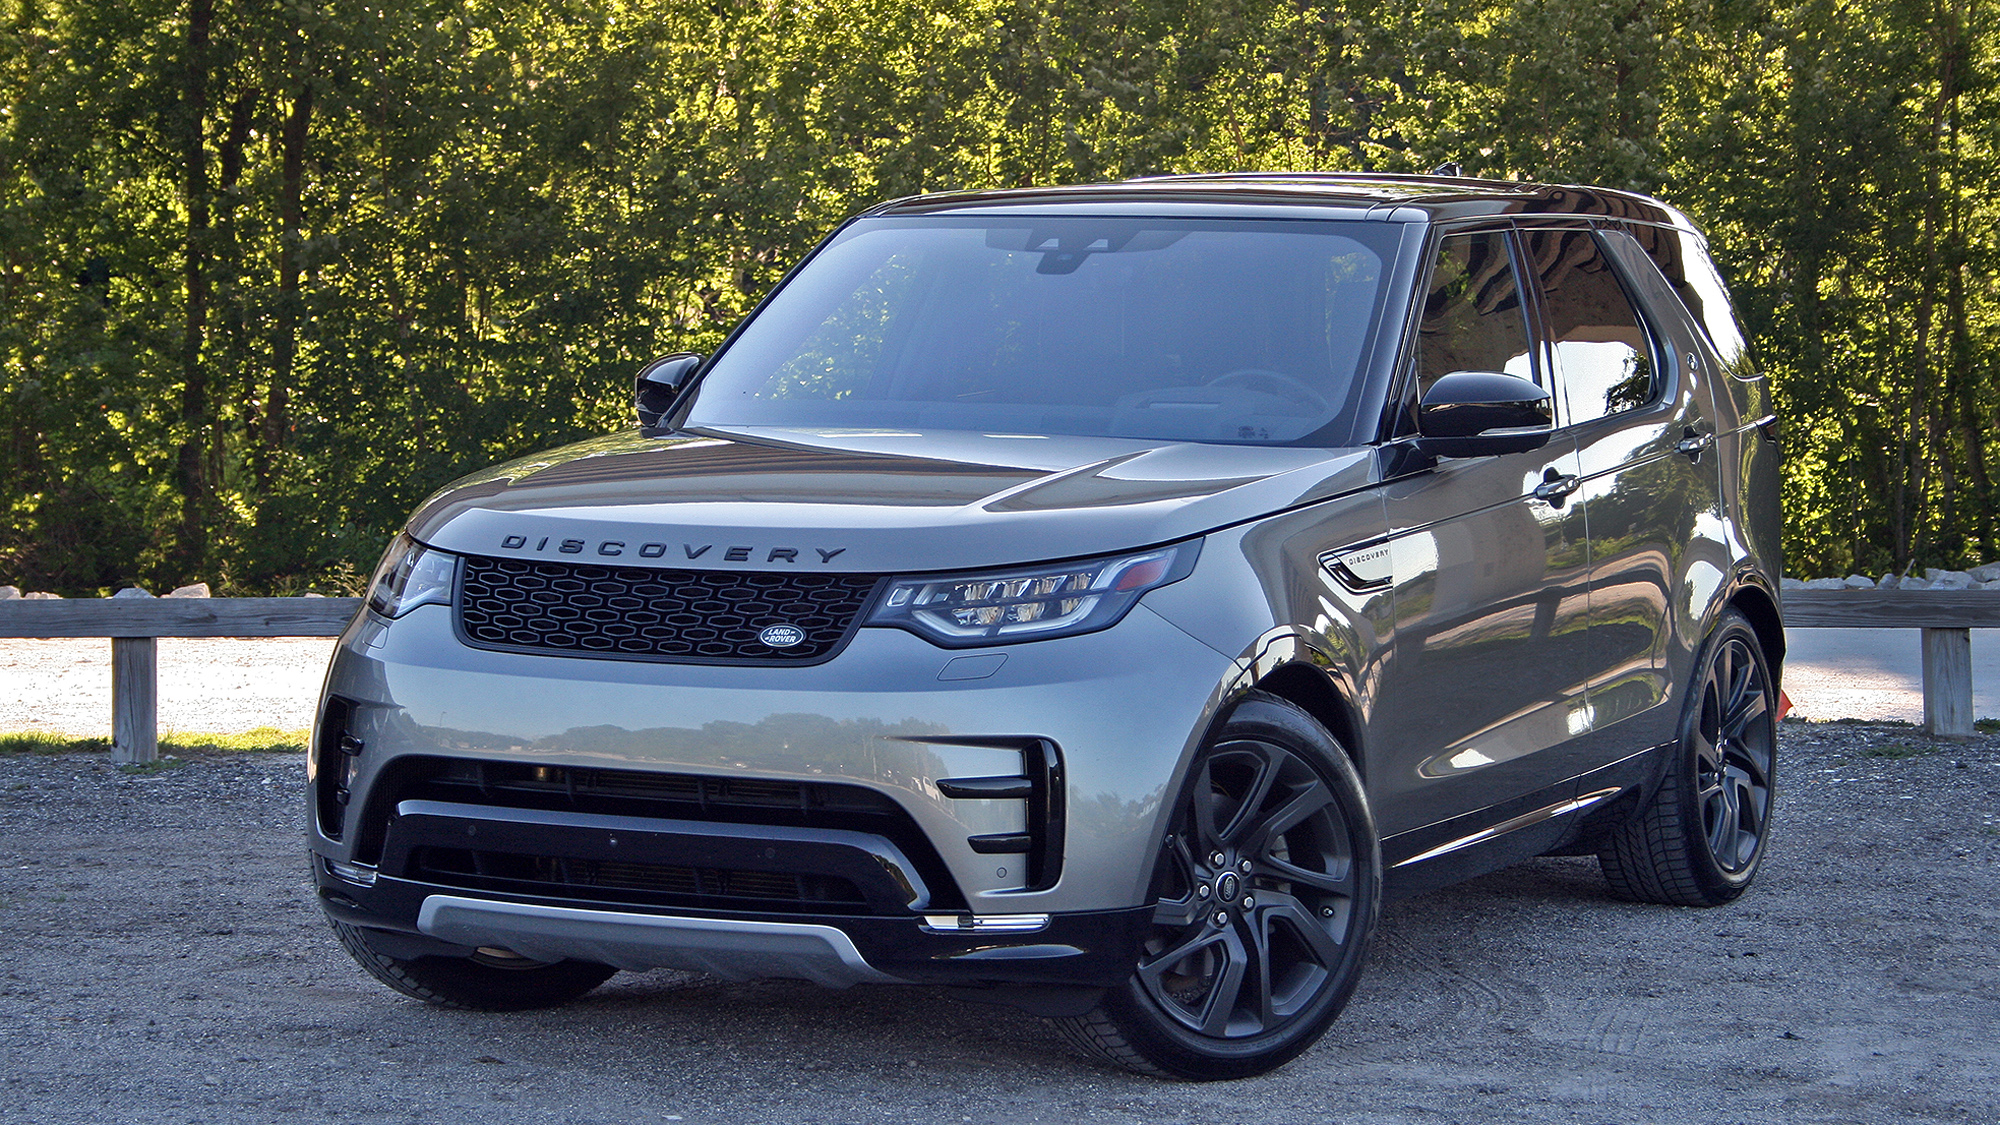 hight resolution of land rover discovery reviews specs prices photos and videos top speed